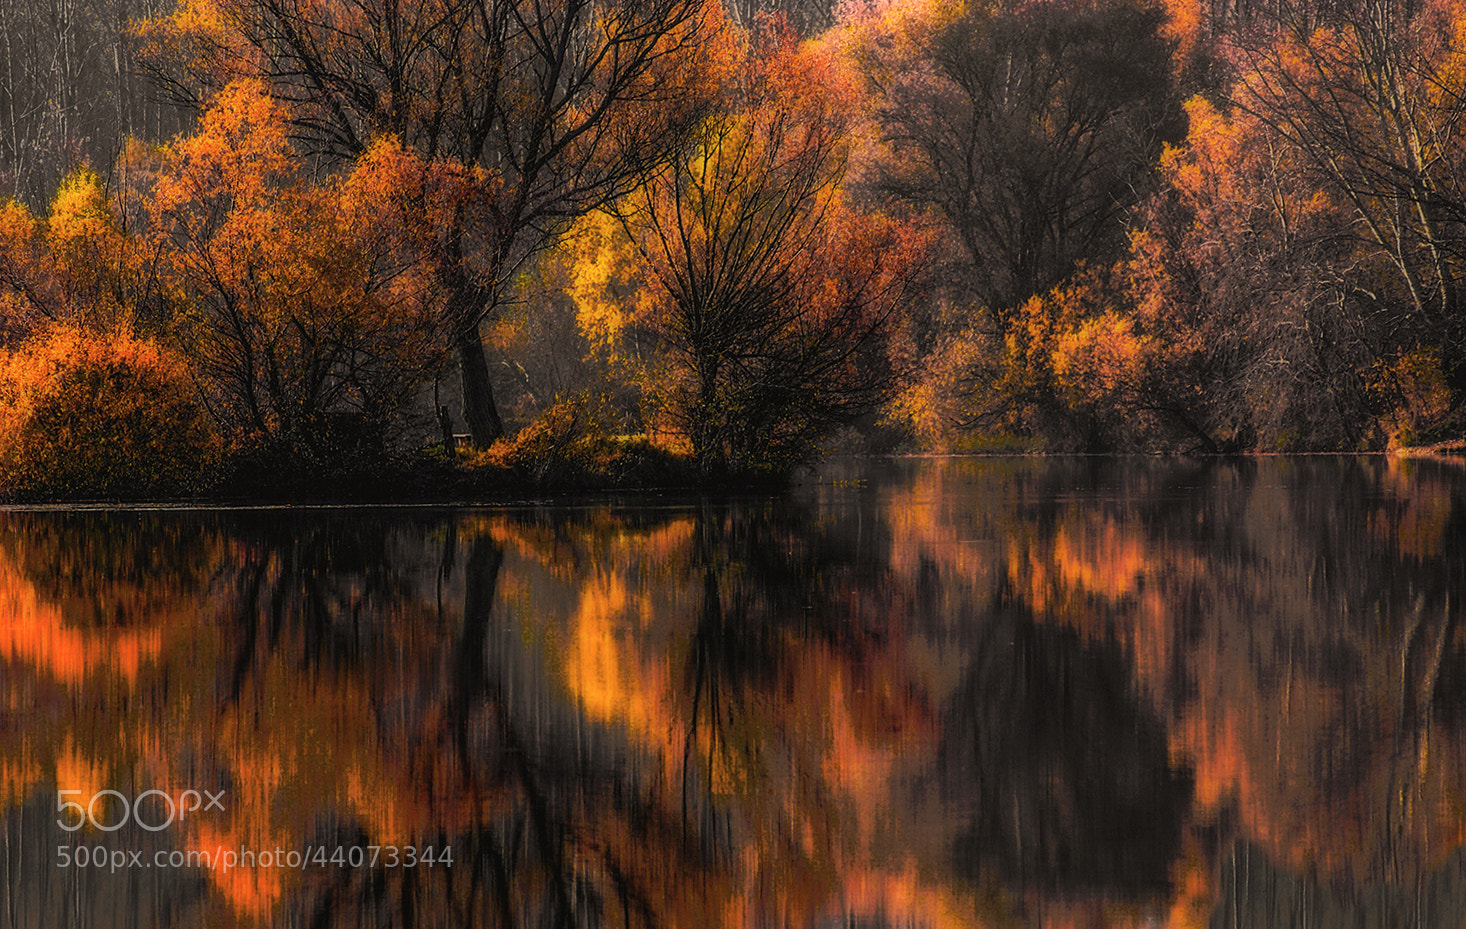 Photograph autumn by Andy 58 on 500px